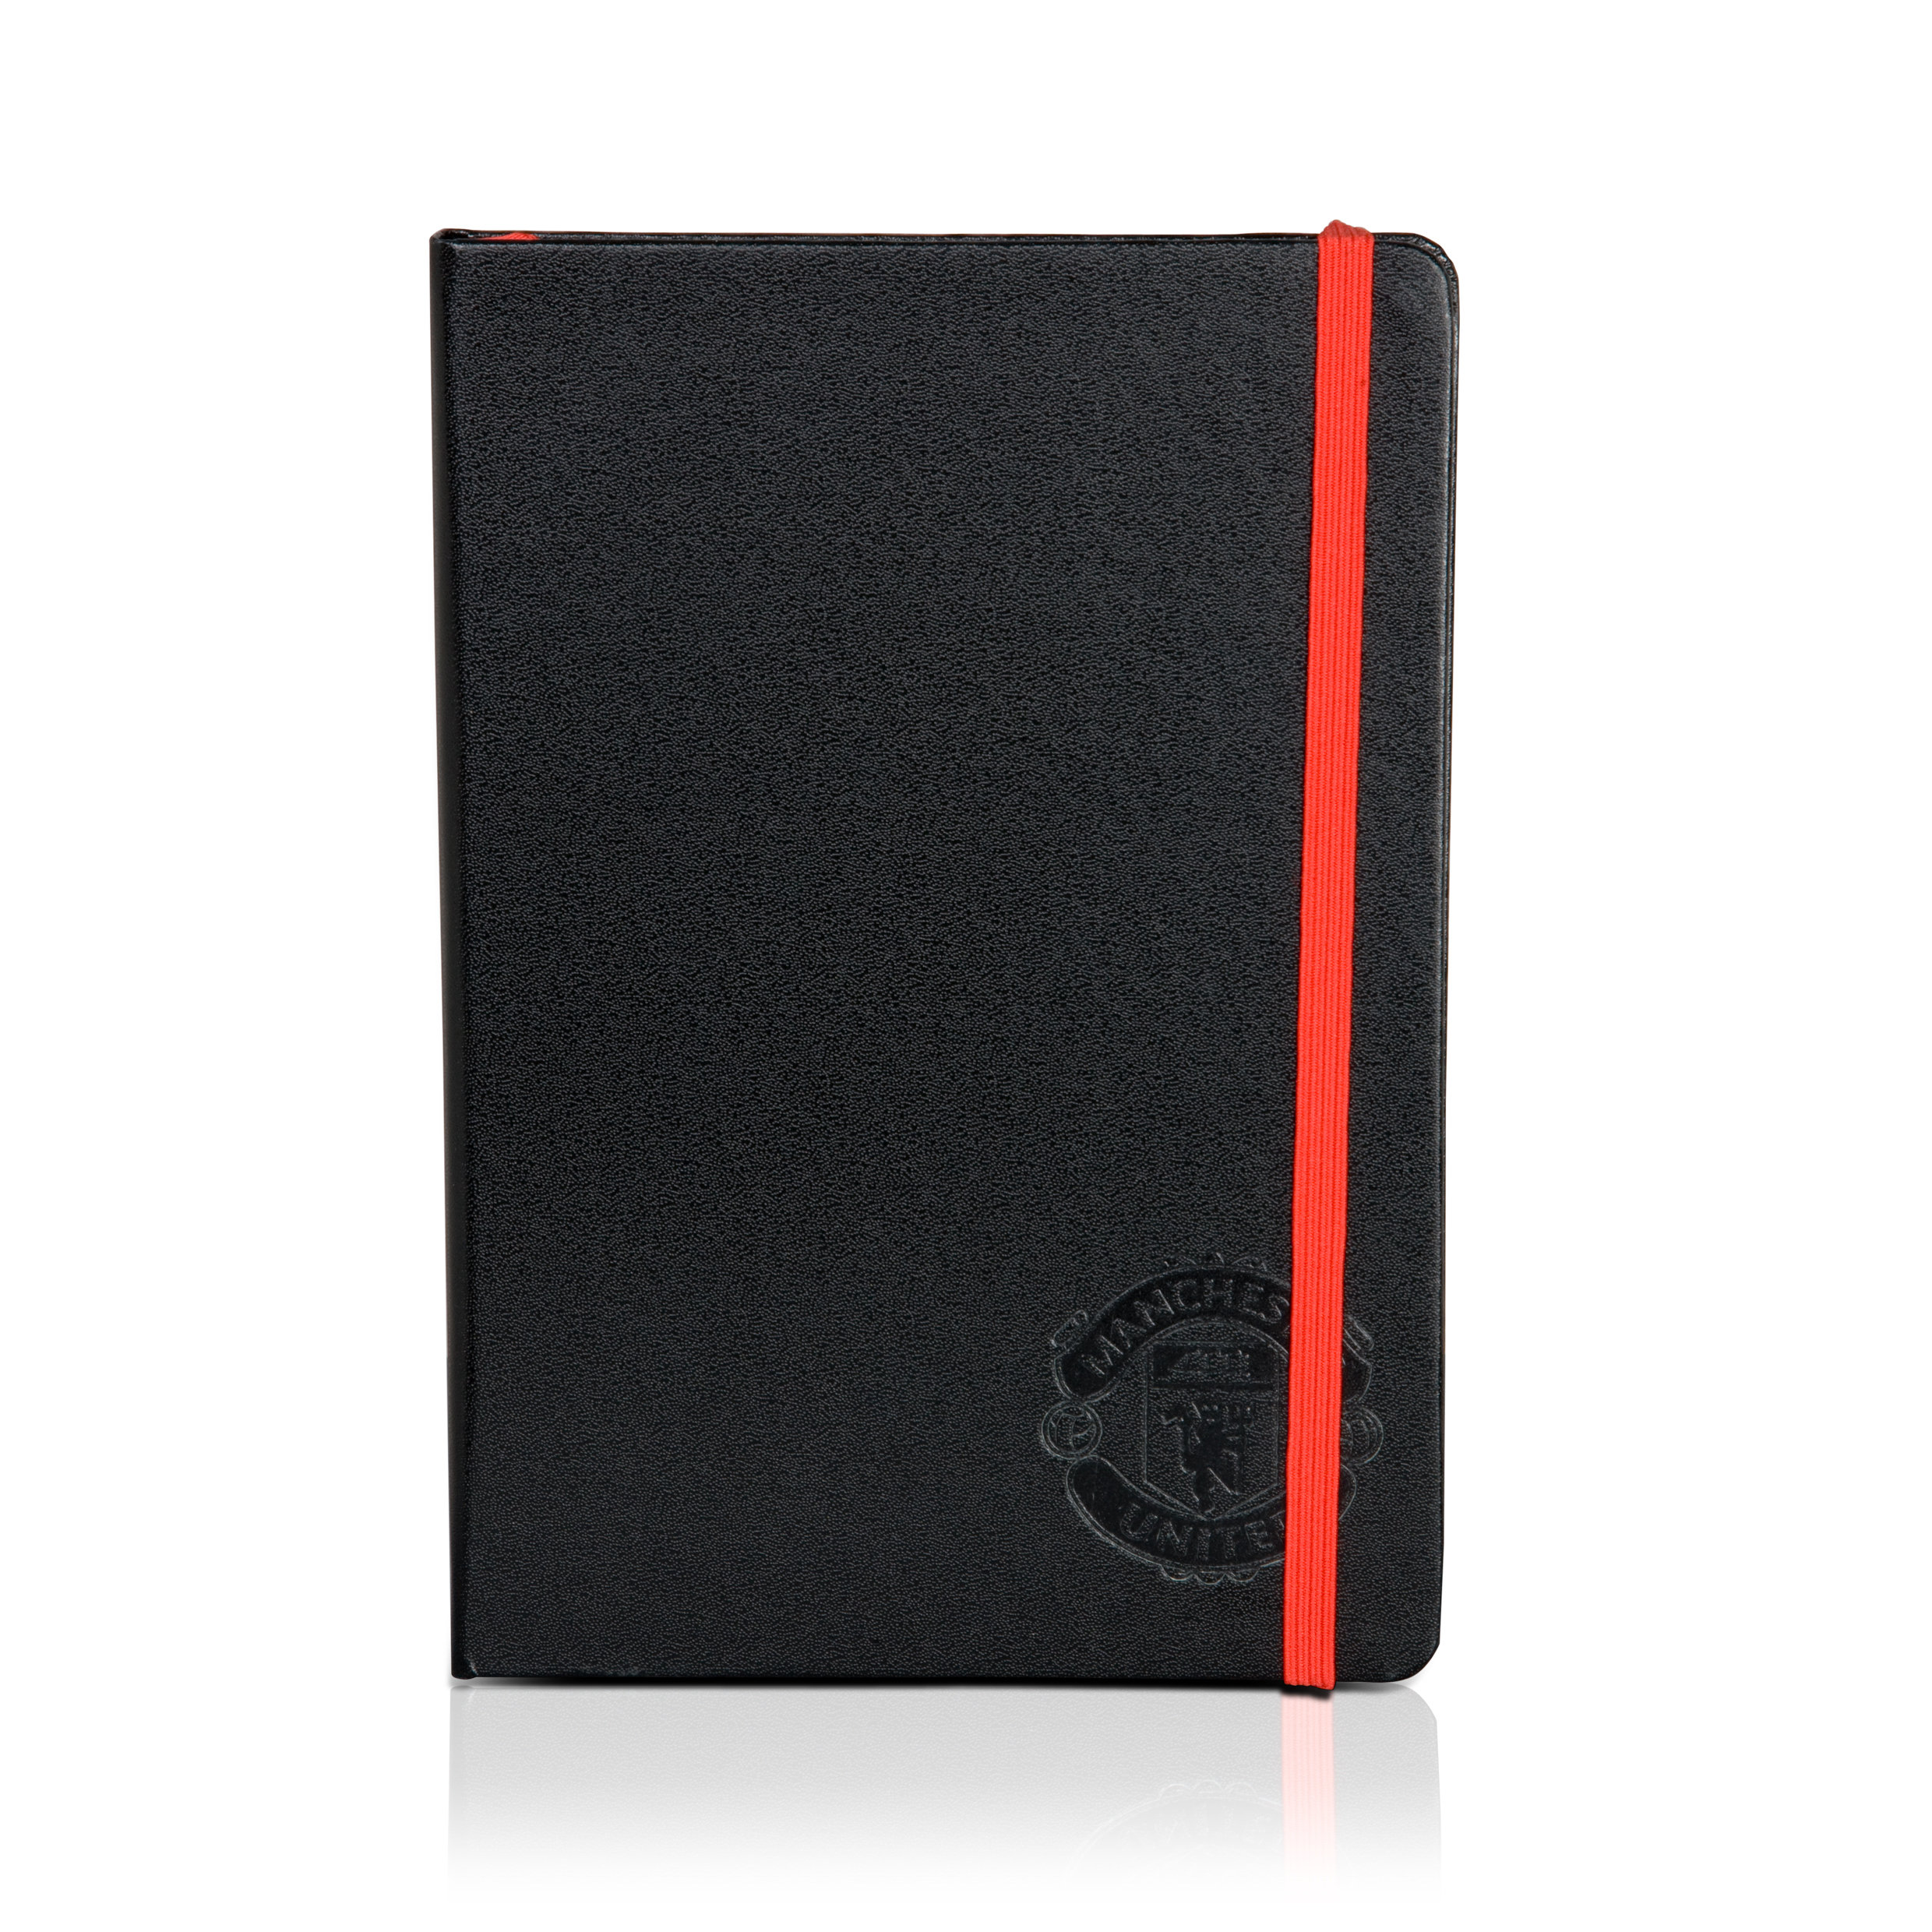 Manchester United Executive Notepad